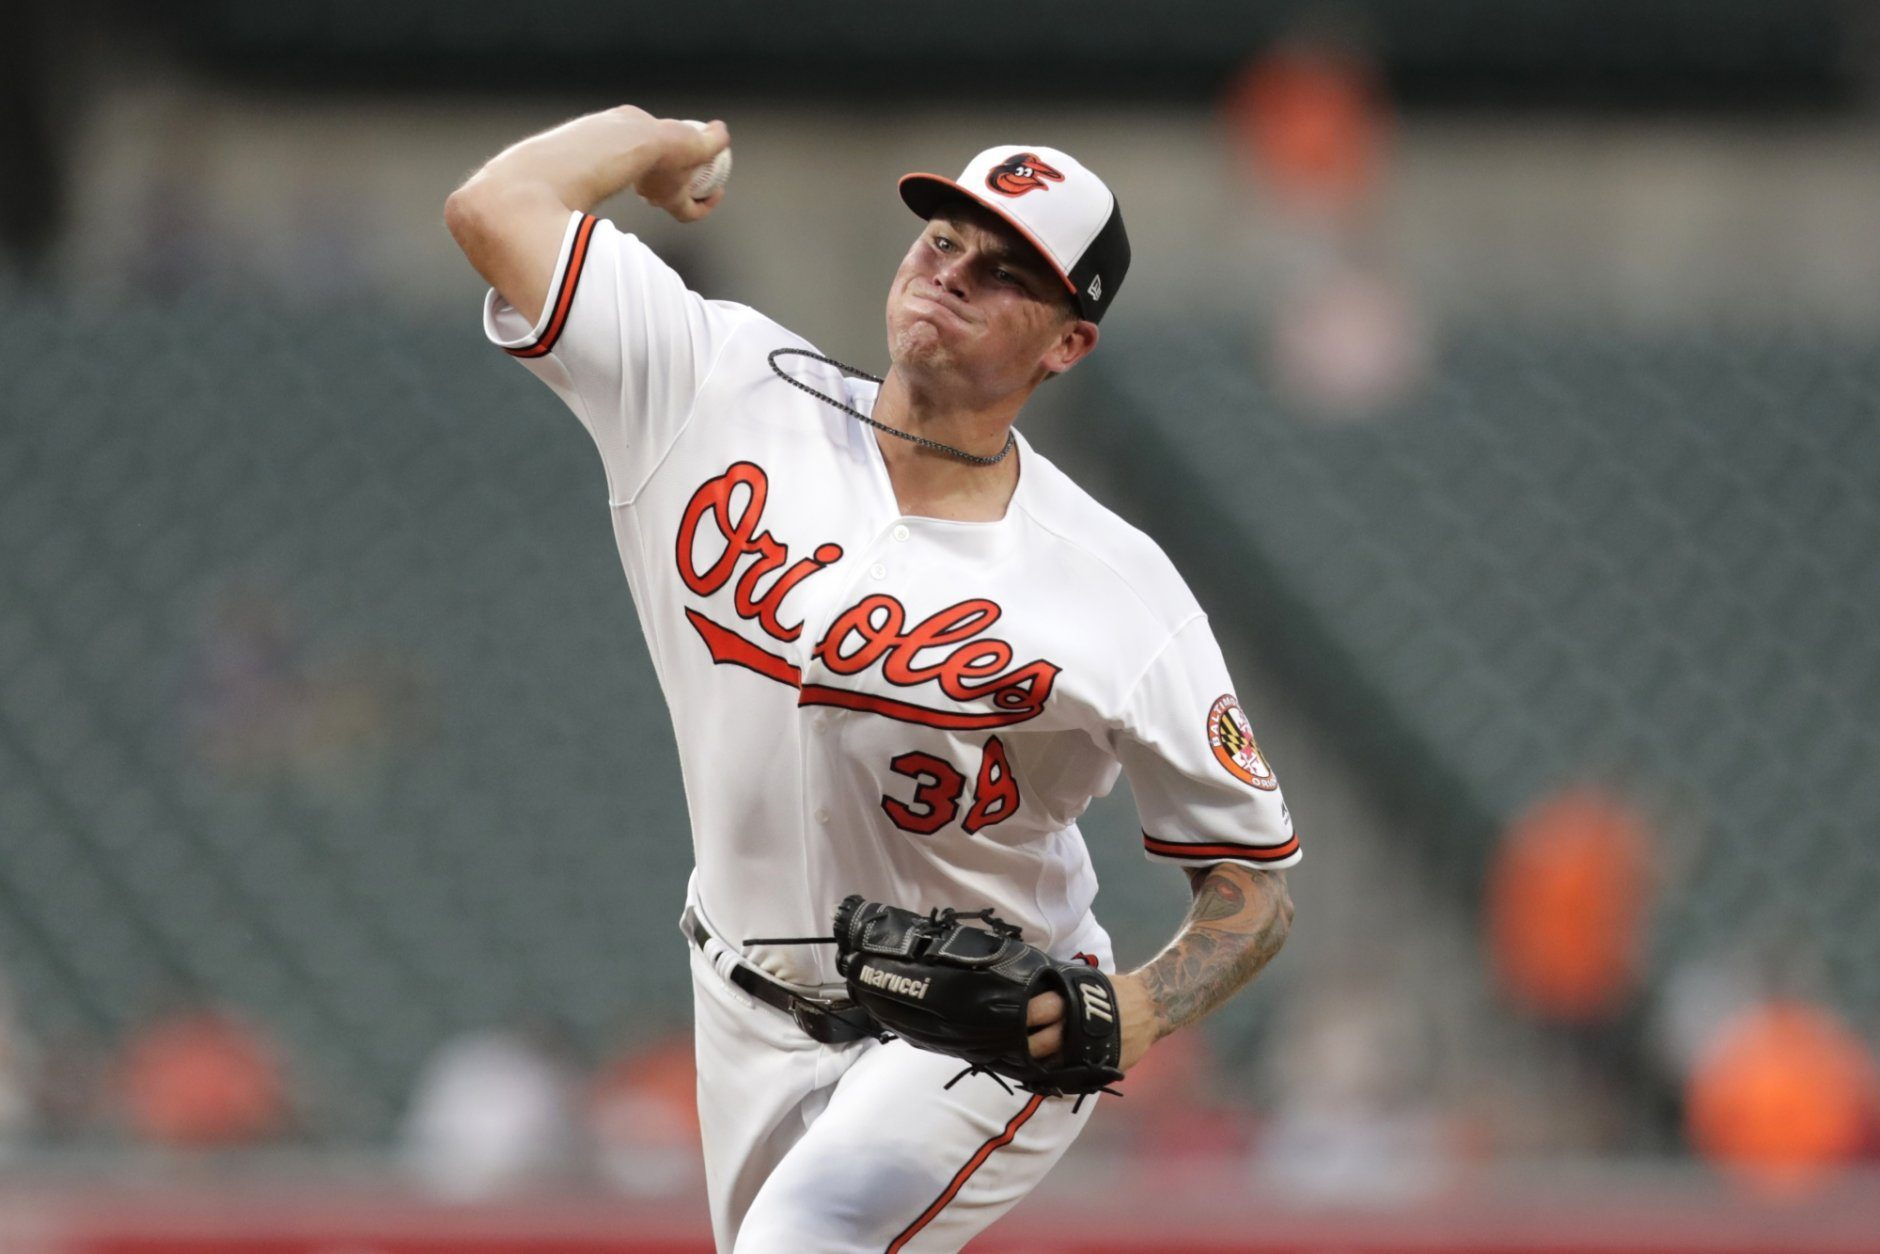 Baltimore Orioles starting pitcher Aaron Brooks throws to a Kansas City Royals batter during the second inning of a baseball game, Wednesday, Aug. 21, 2019, in Baltimore. (AP Photo/Julio Cortez)